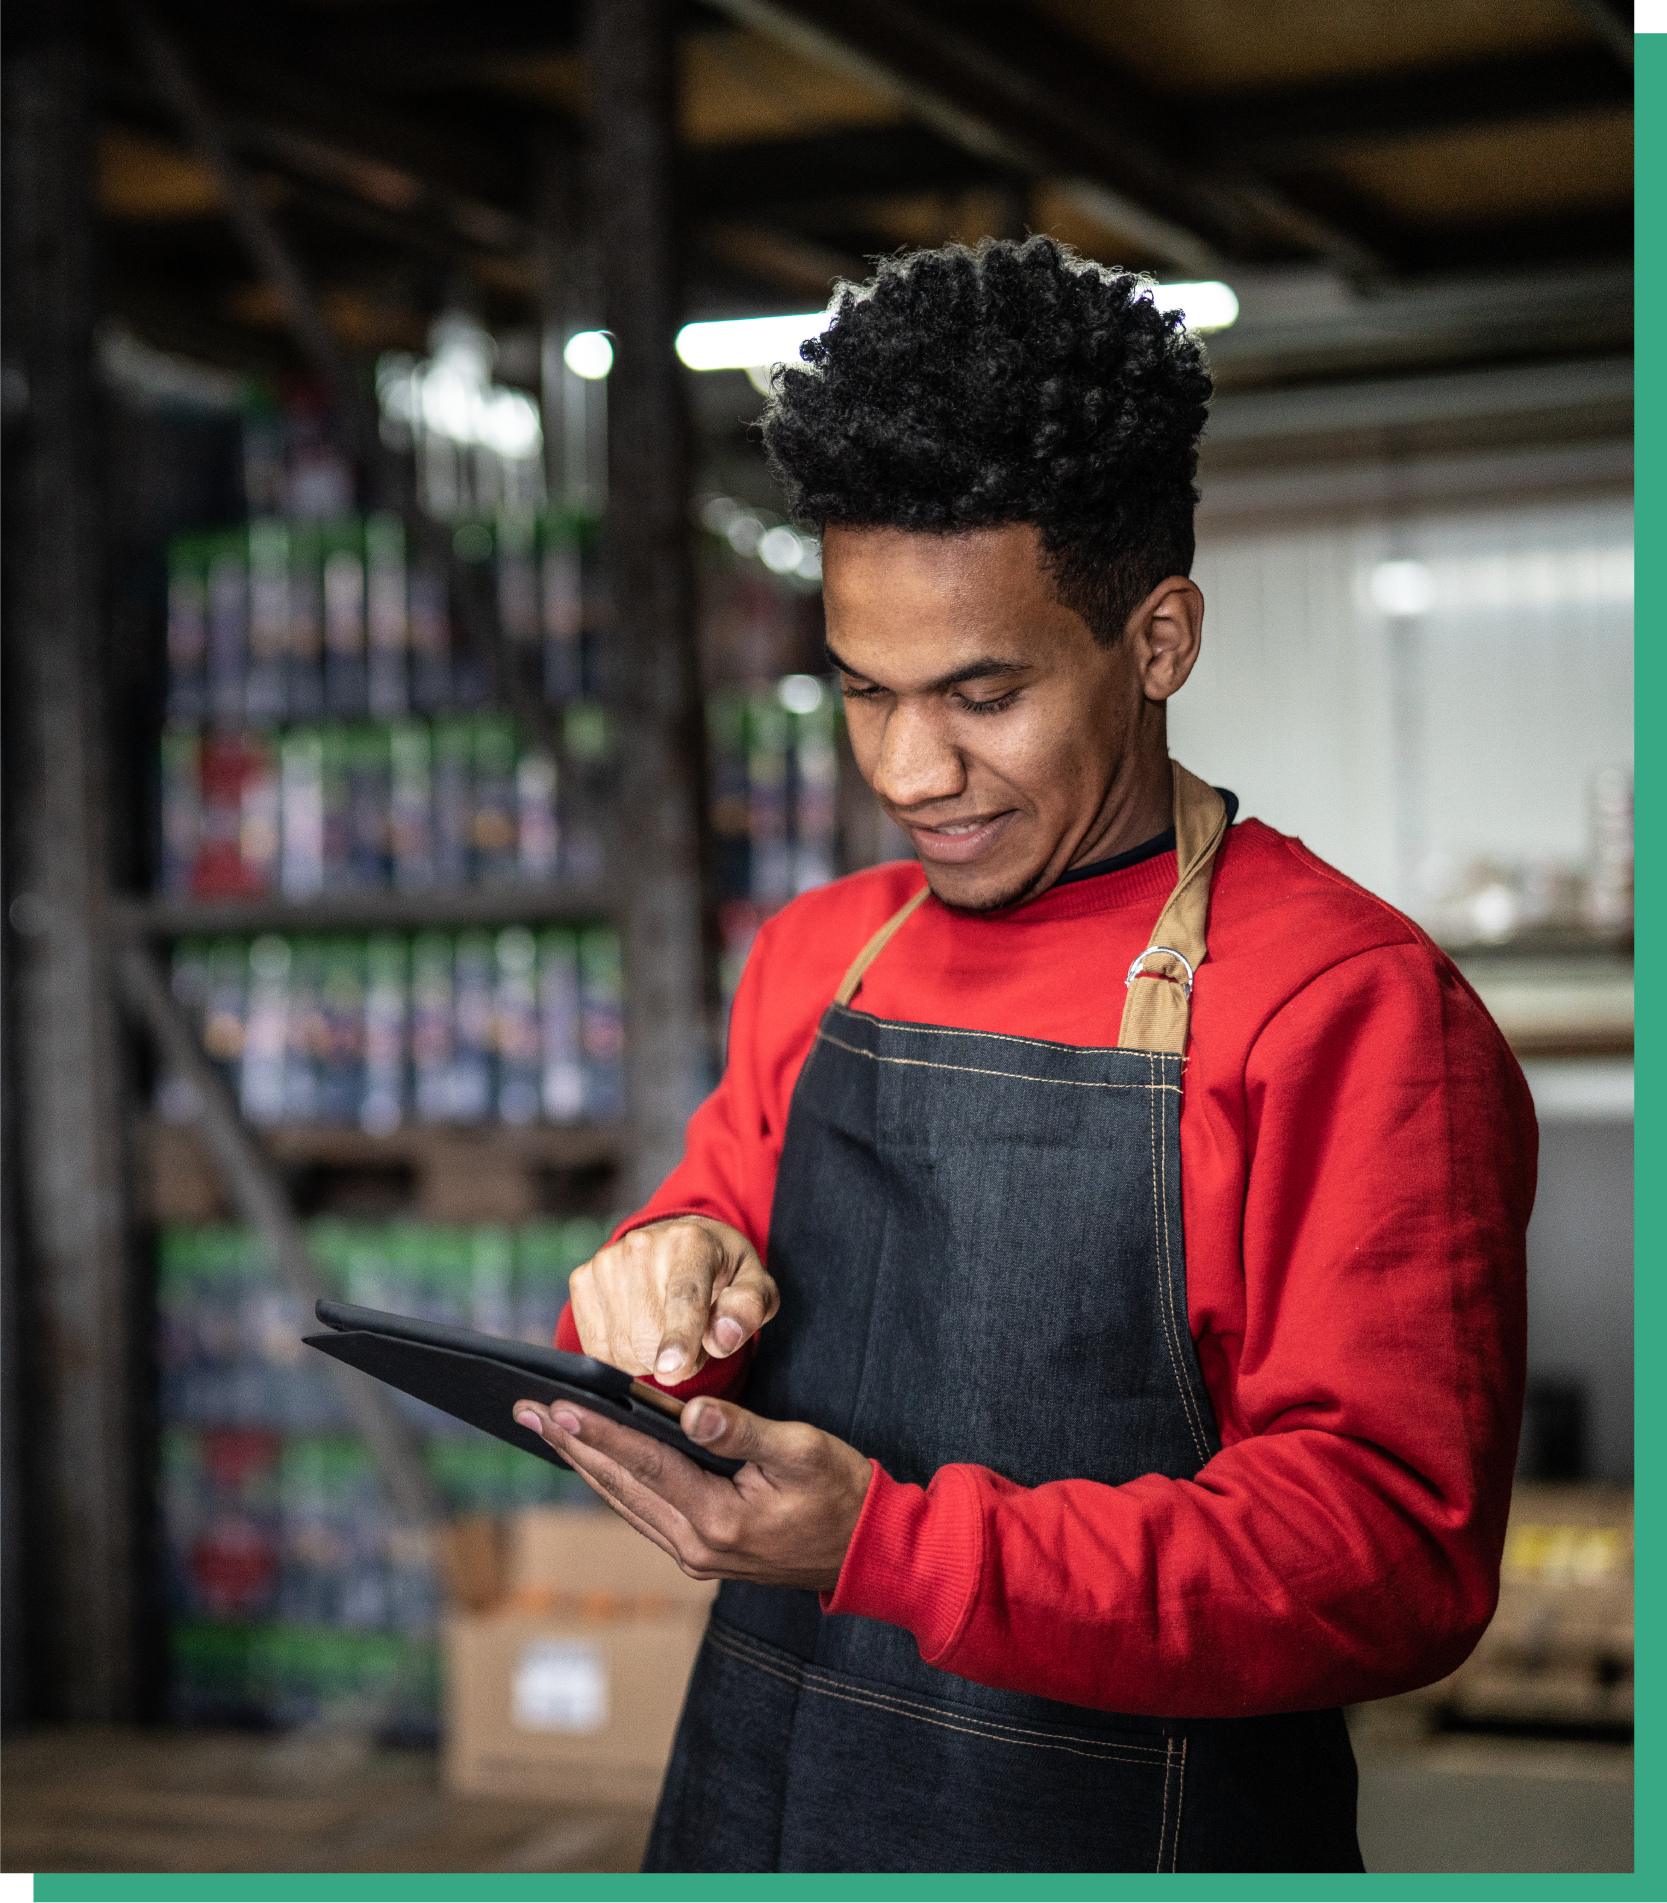 3 Ways a Mobile Digital Adoption Platform can Reduce Disruptions from Mobile Tech